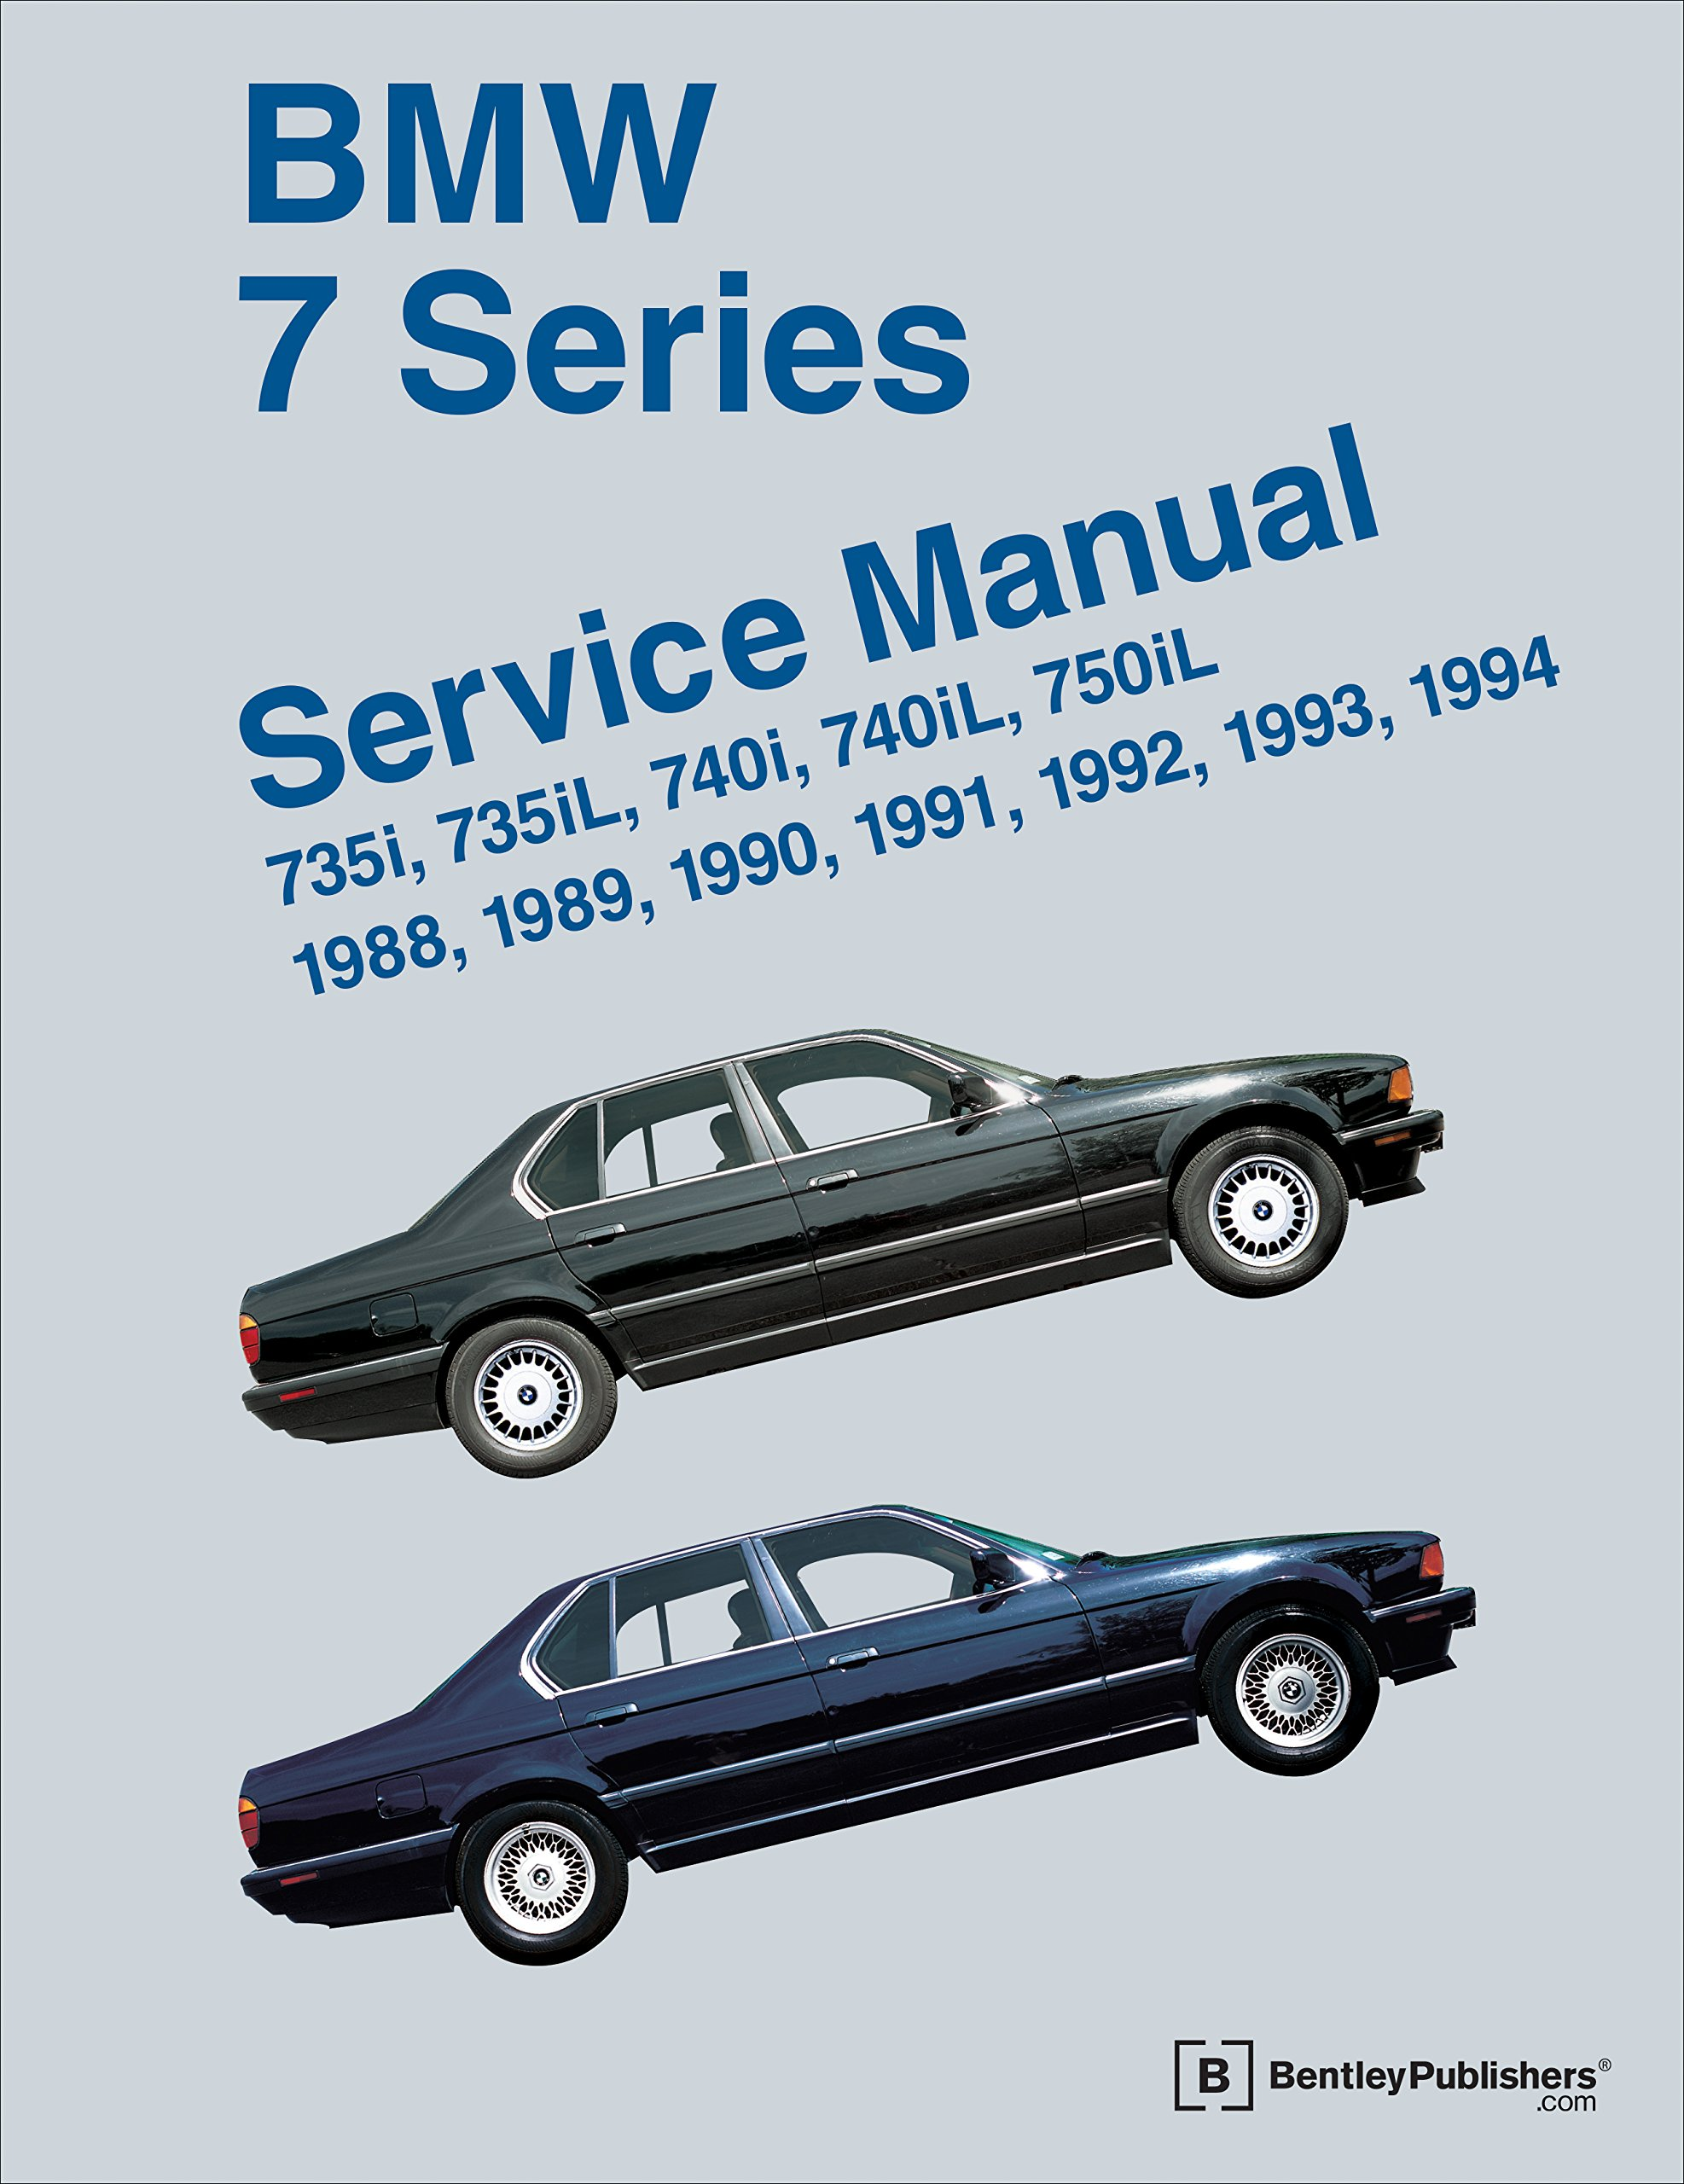 BMW 7 Series (E32) Service Manual: 735i, 735iL, 740i, 740iL, 750iL: 1988,  1989, 1990, 1991, 1992, 1993, 1994: Amazon.co.uk: Bentley Publishers: ...